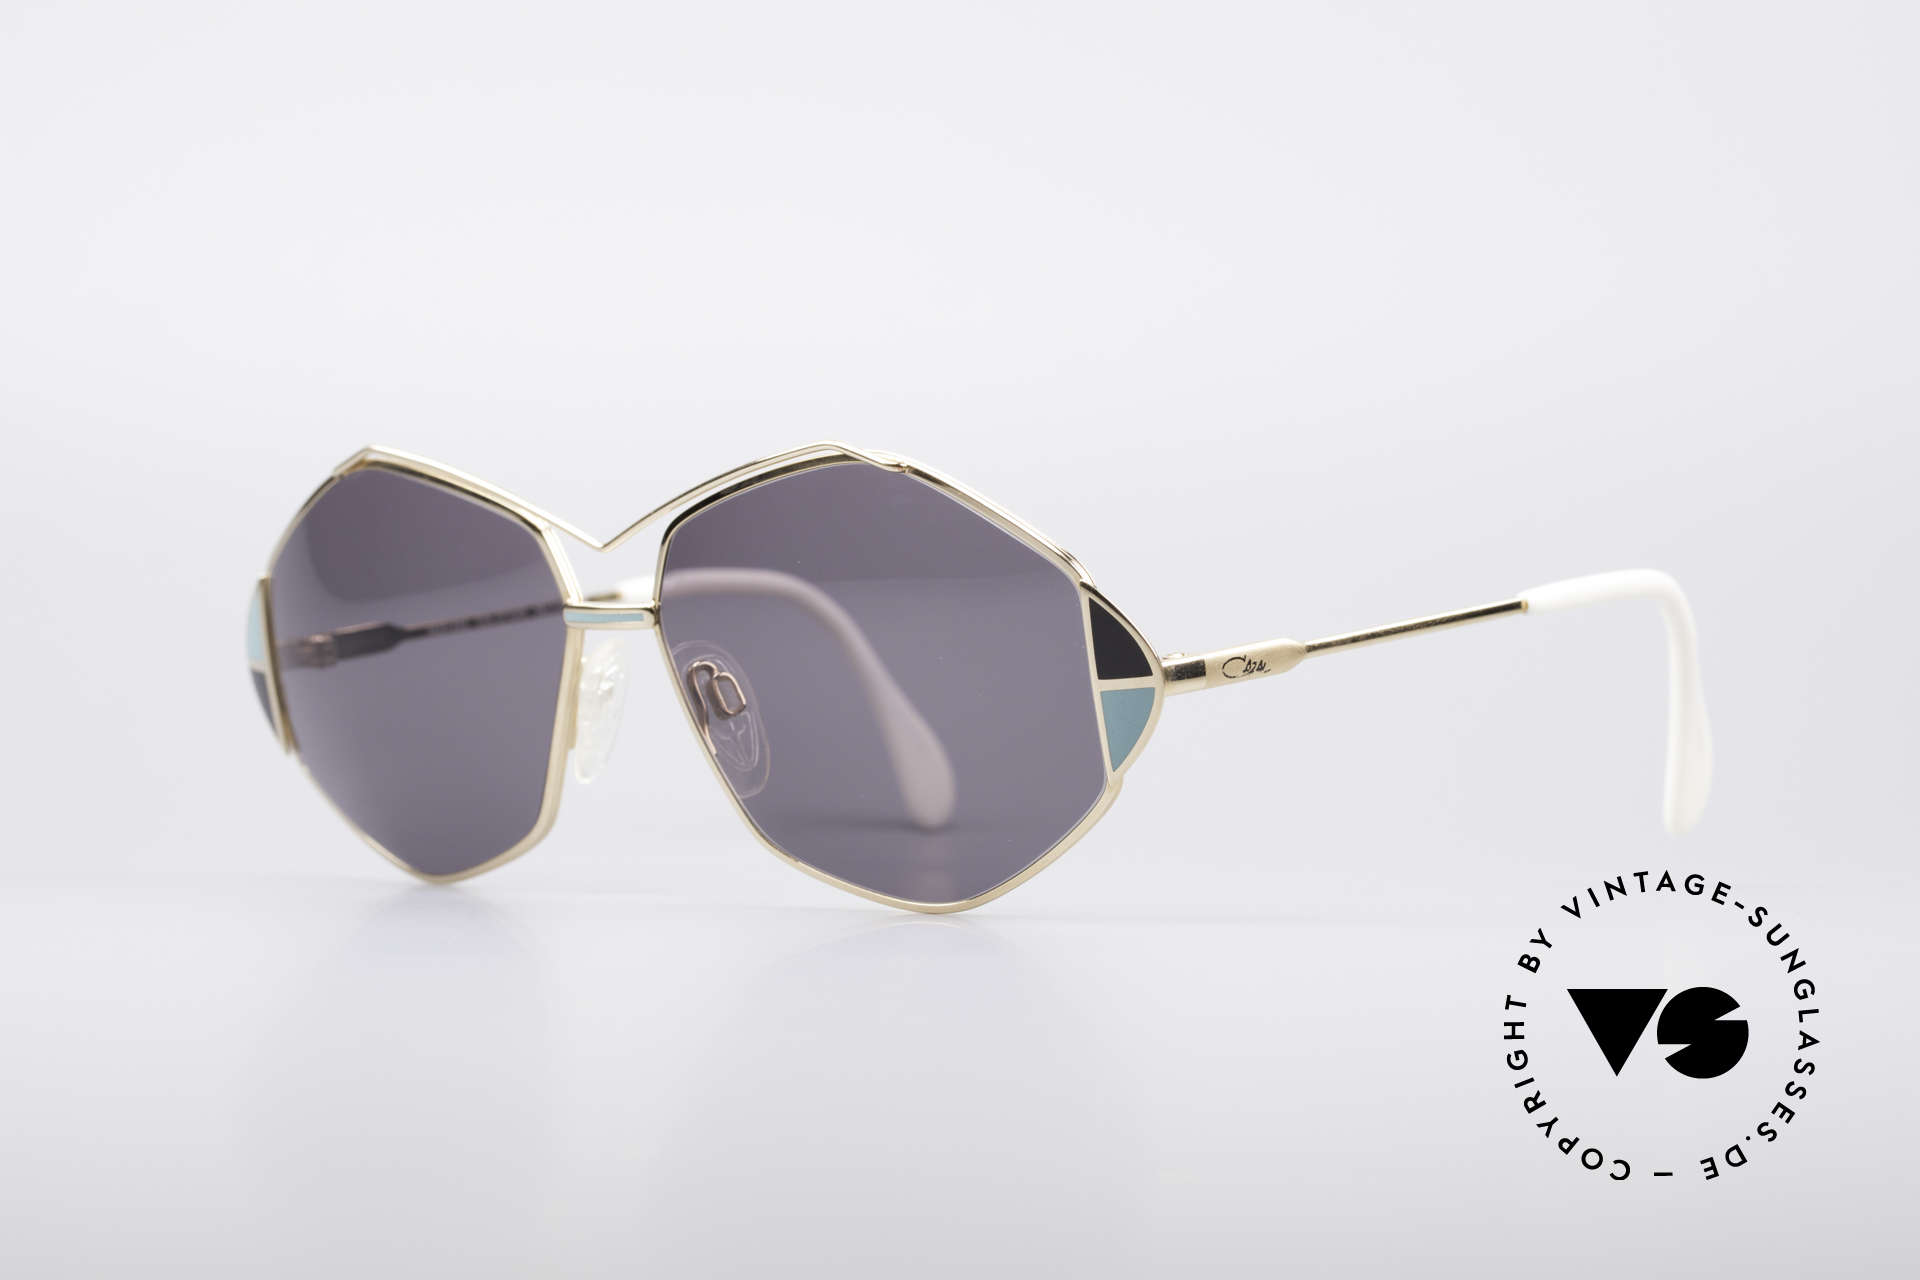 Cazal 233 Vintage West Germany Shades, great frame design with elaborate color accents, Made for Women